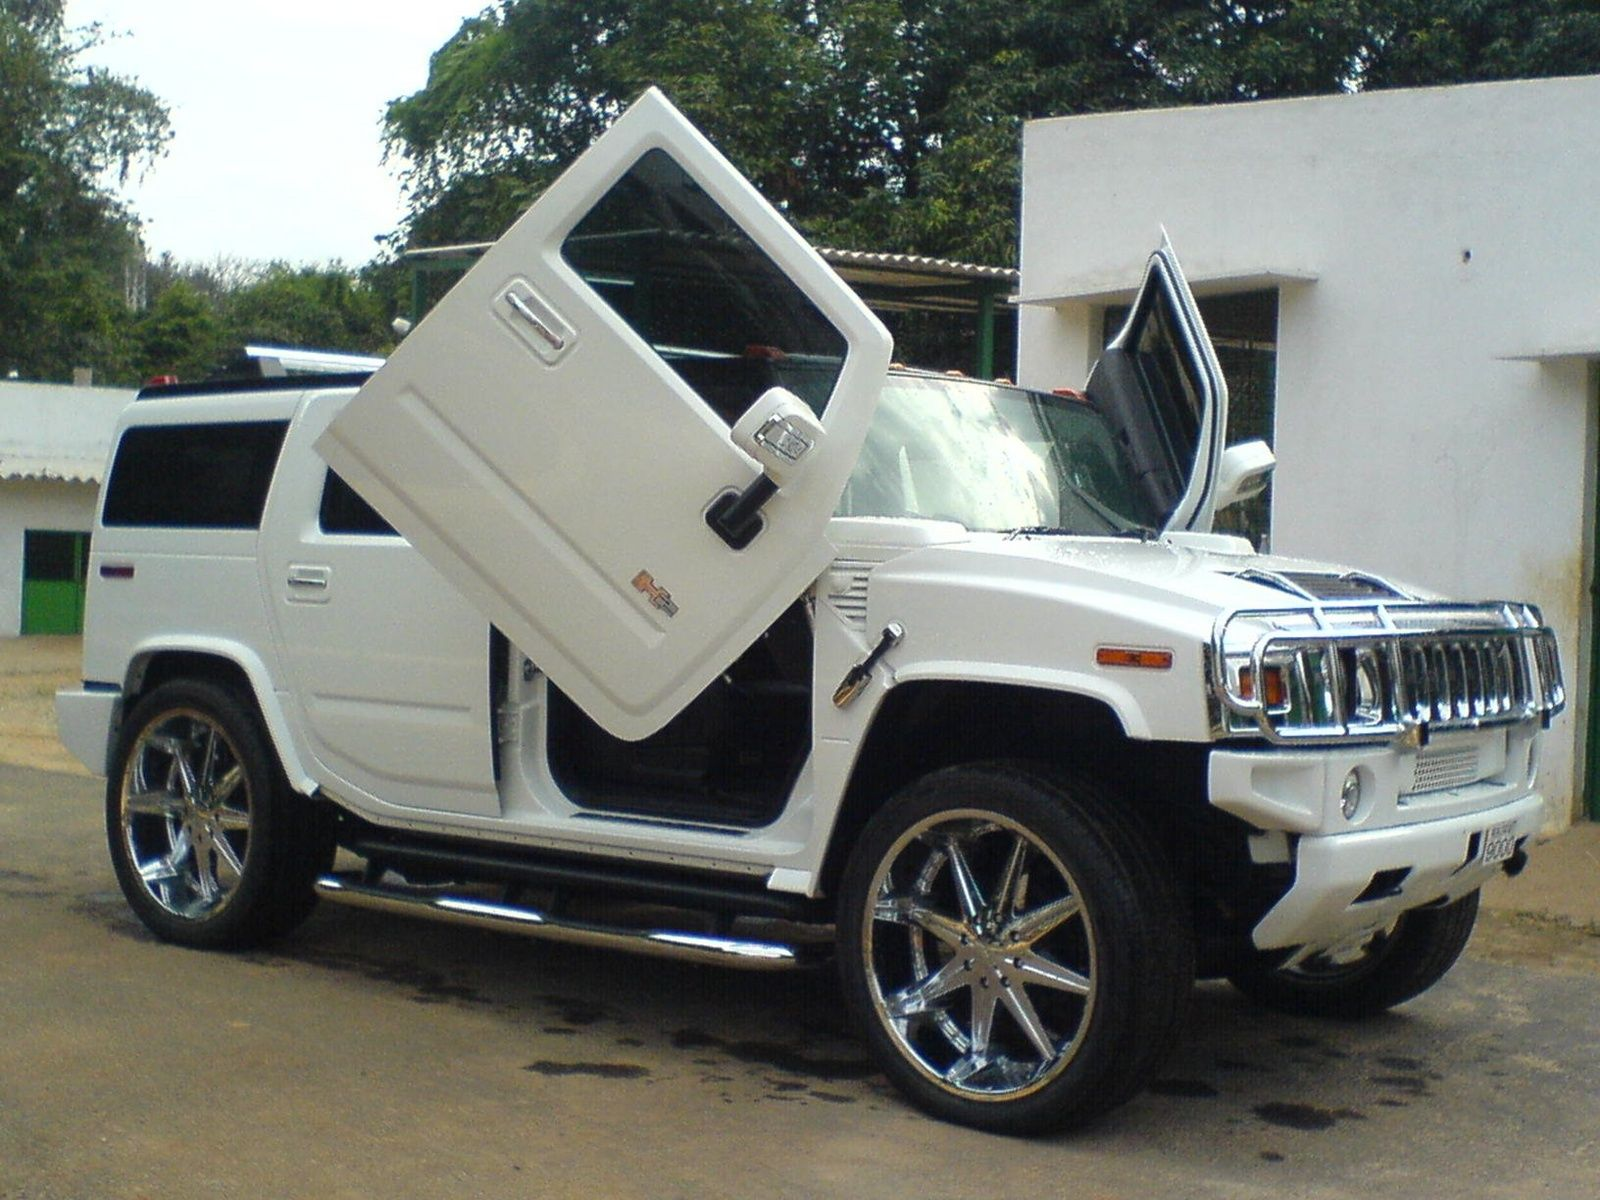 I want this in hot pink with a panther sticker on it cool cars pinterest hummer h2 hot pink and cars